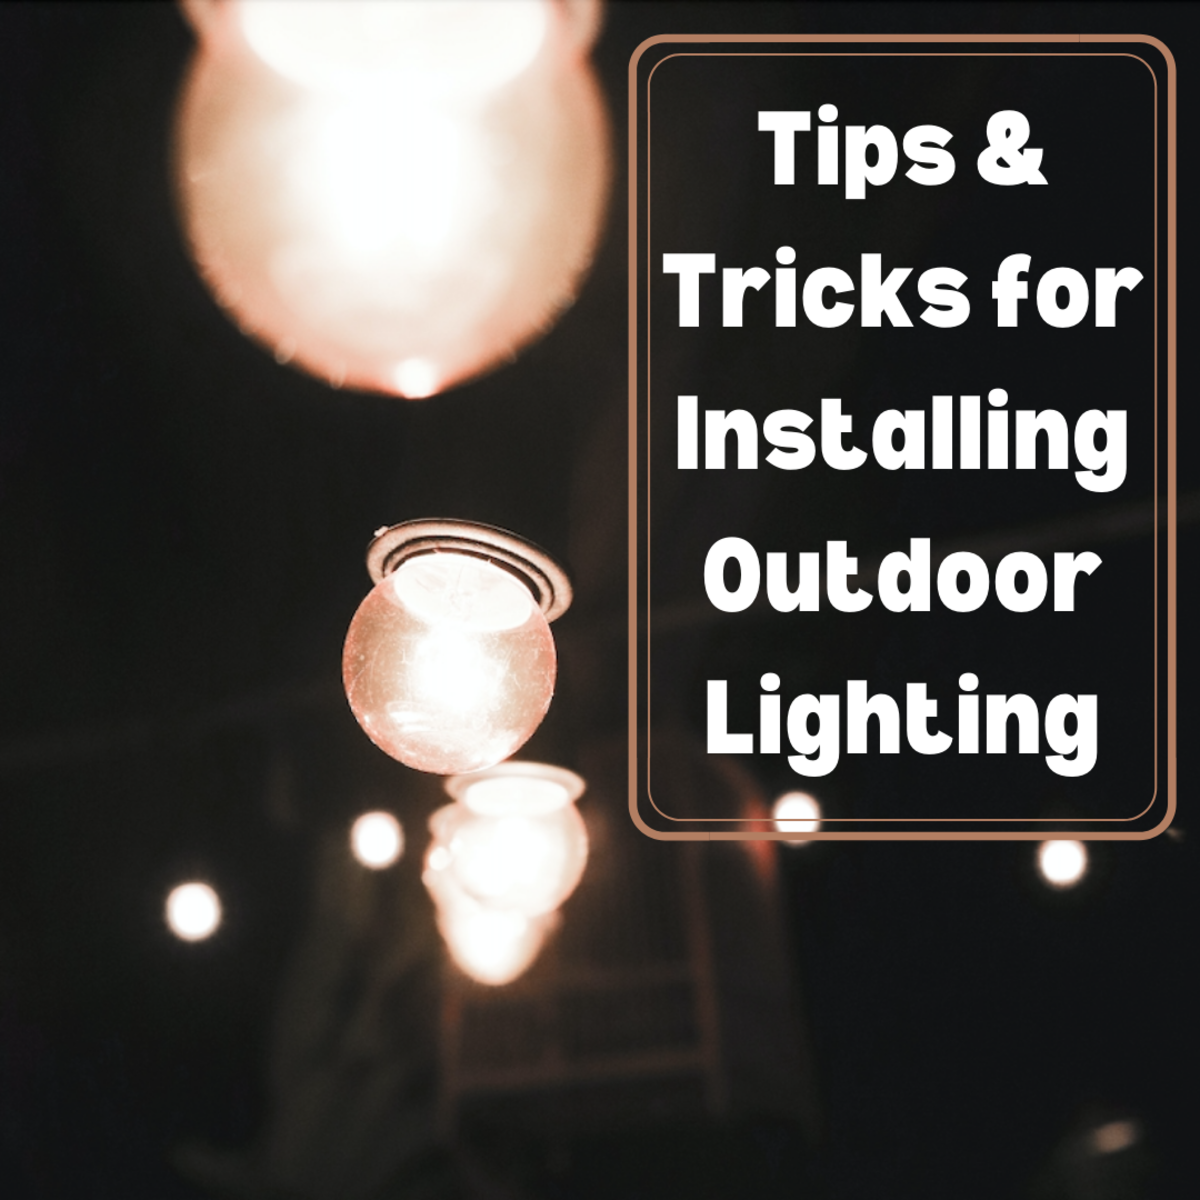 This article teaches important tips for installing low-voltage outdoor lighting